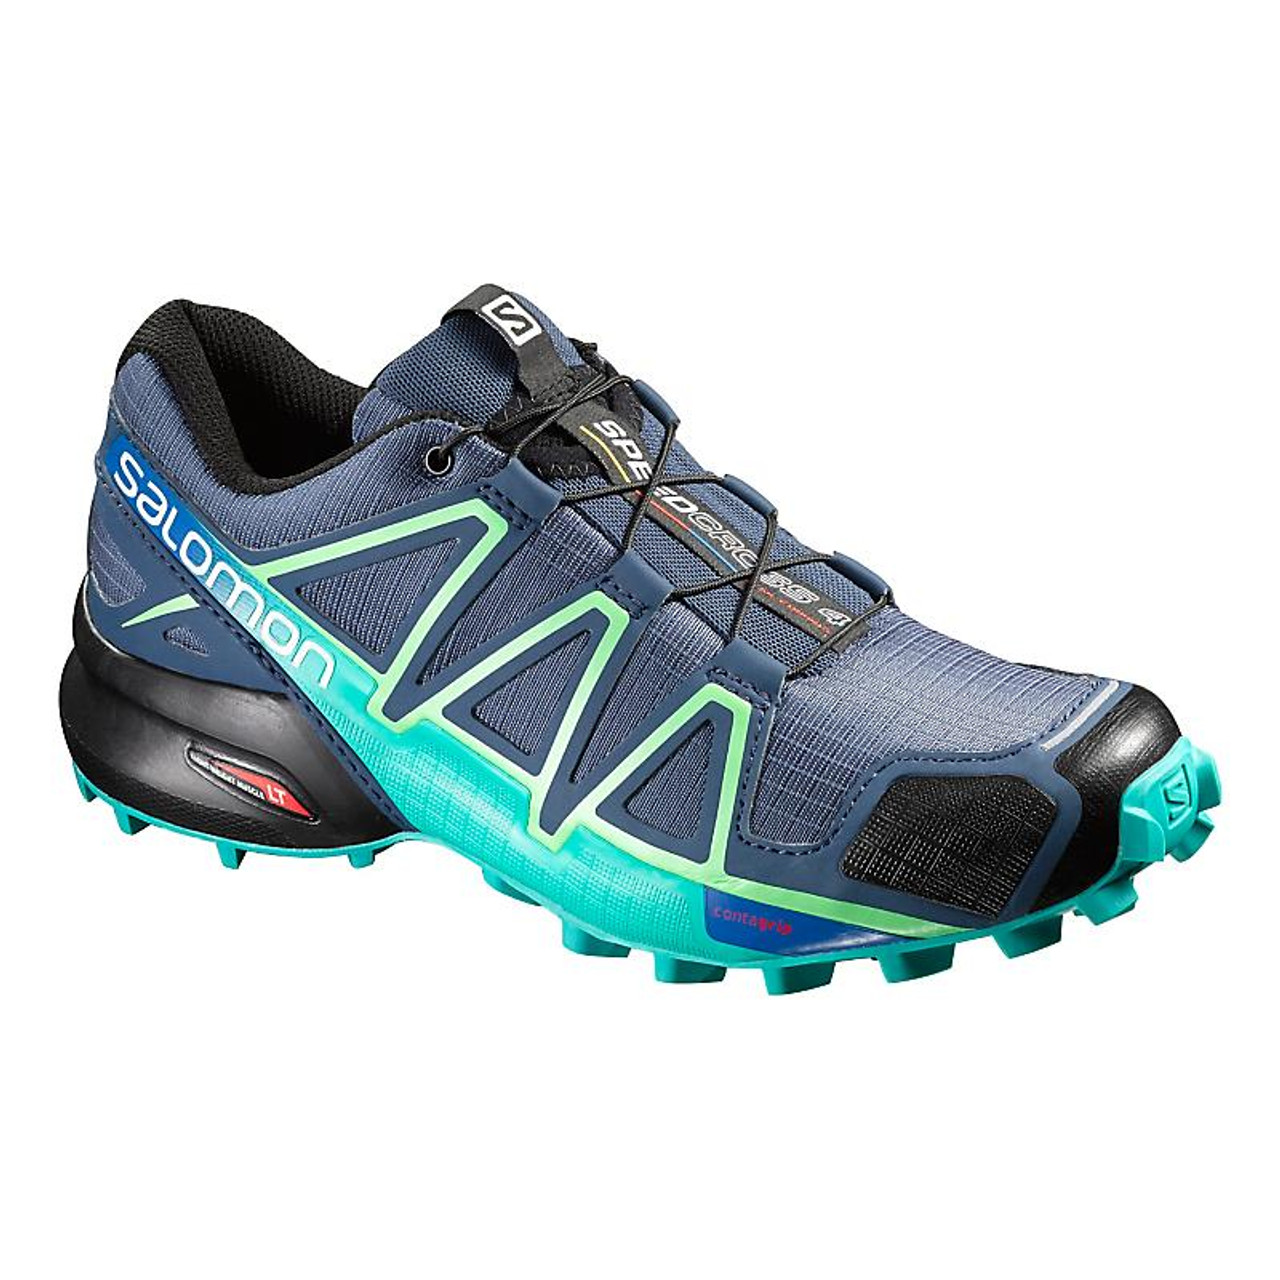 Women's Salomon Speedcross 4